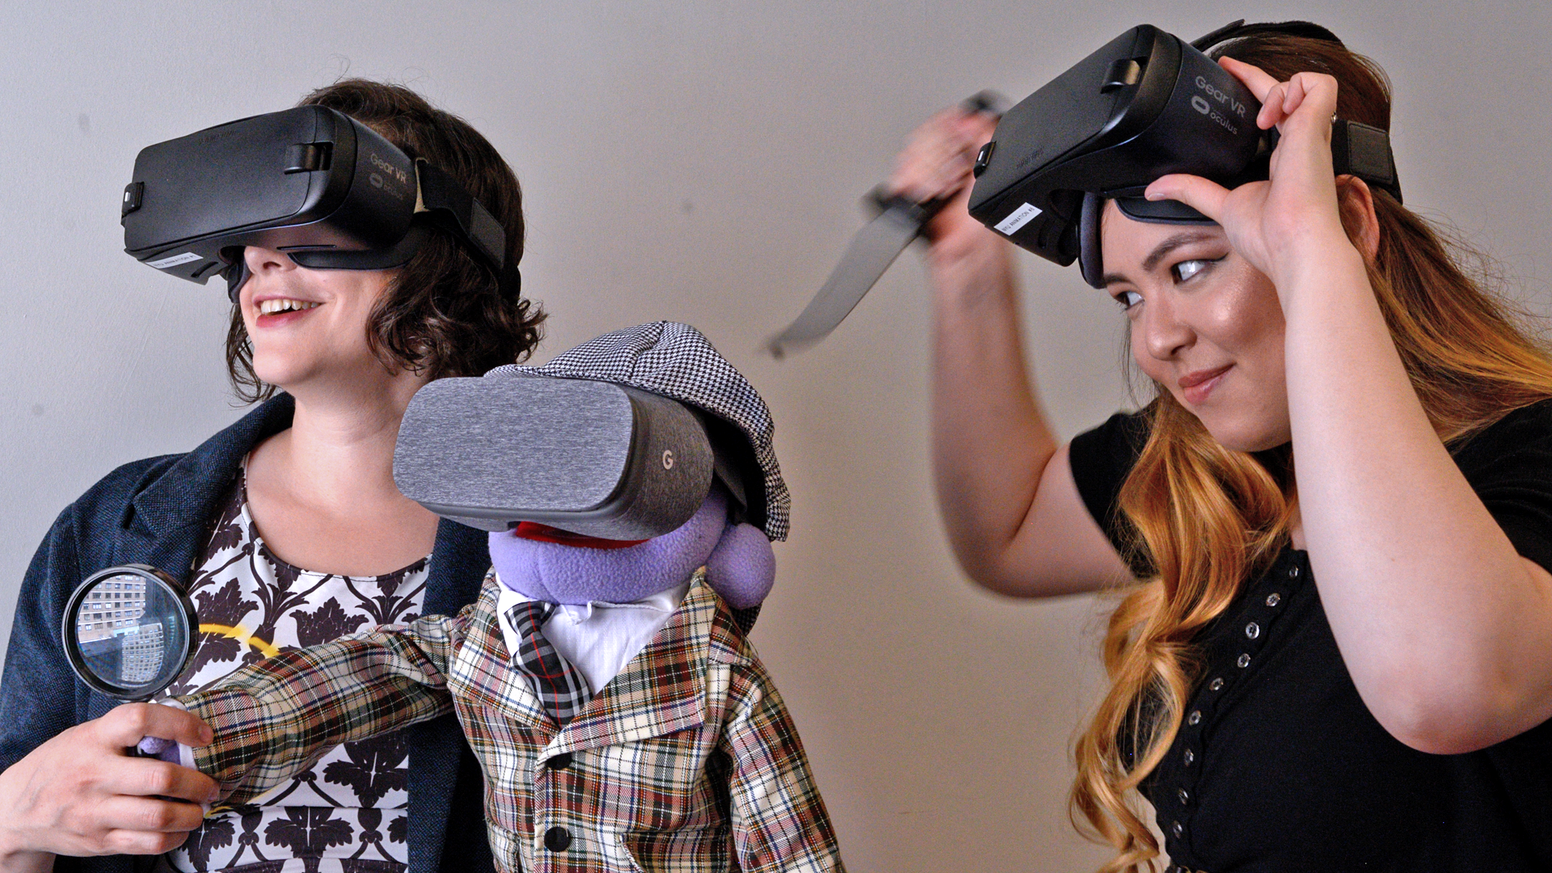 You play a puppet detective in this short interactive 360 degree video game starring puppets.